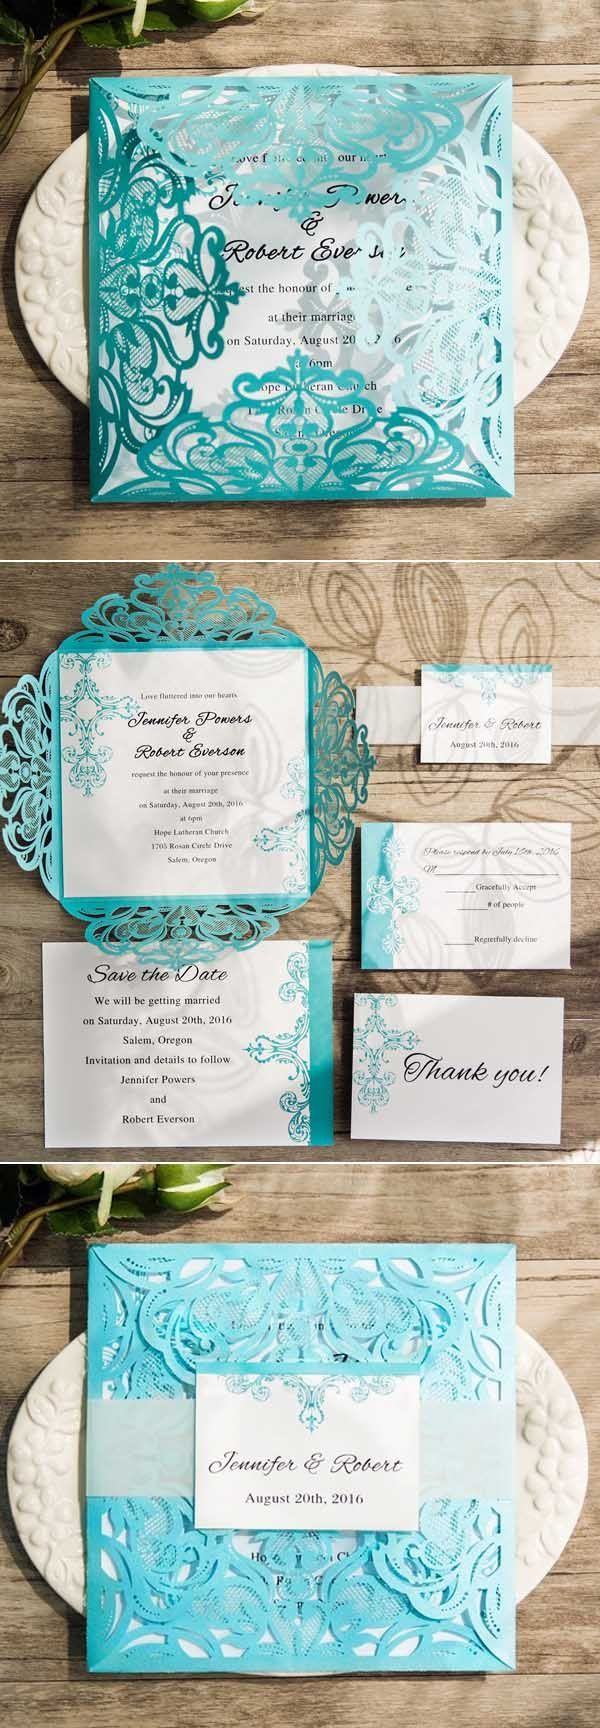 tiffany blue swirl laser cut wedding invitations Find your inspo at www.pinterest.com/laurenweds/wedding-decor?utm_content=buffer0b182&utm_medium=social&utm_source=pinterest.com&utm_campaign=buffer